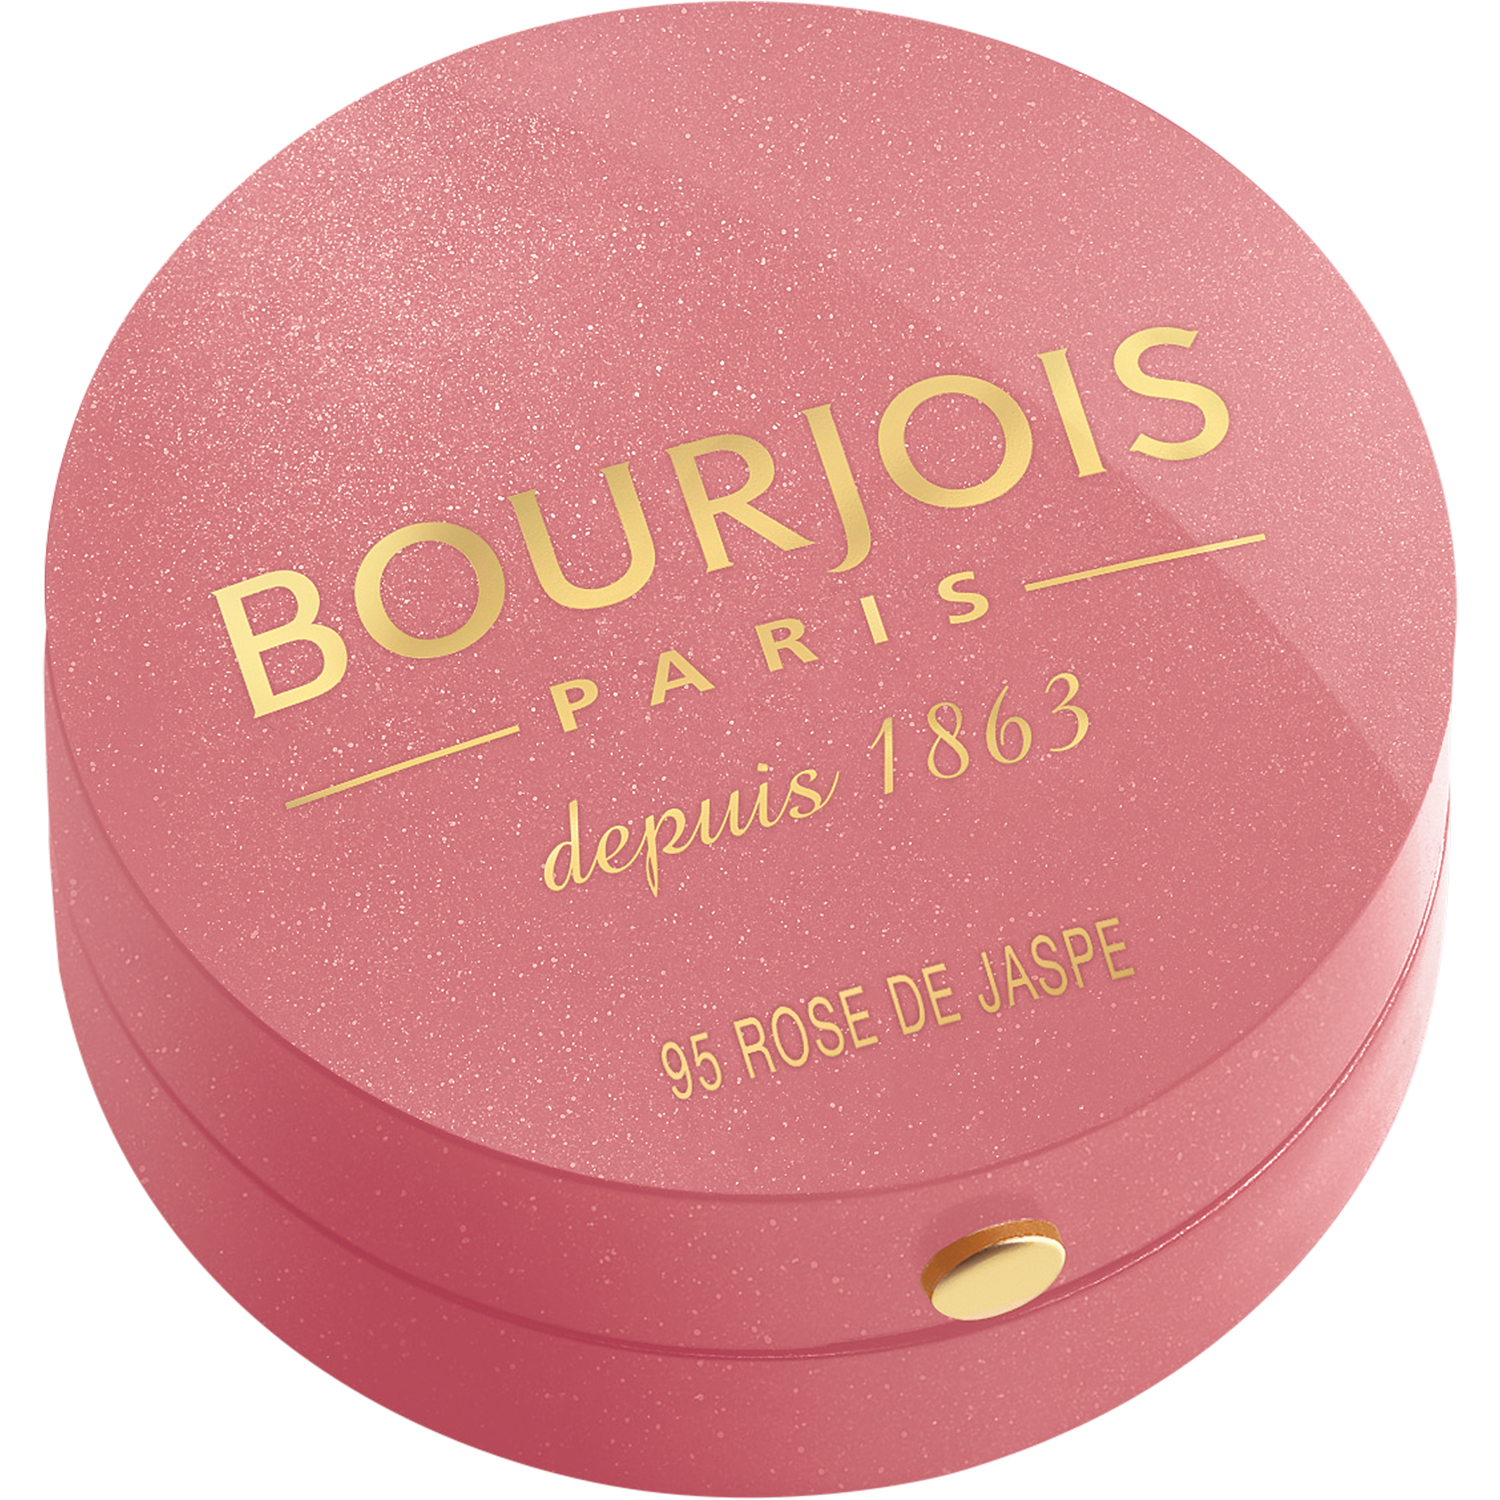 BOURJOIS Румяна для лица 95 / Blusher rose de jaspe - Румяна